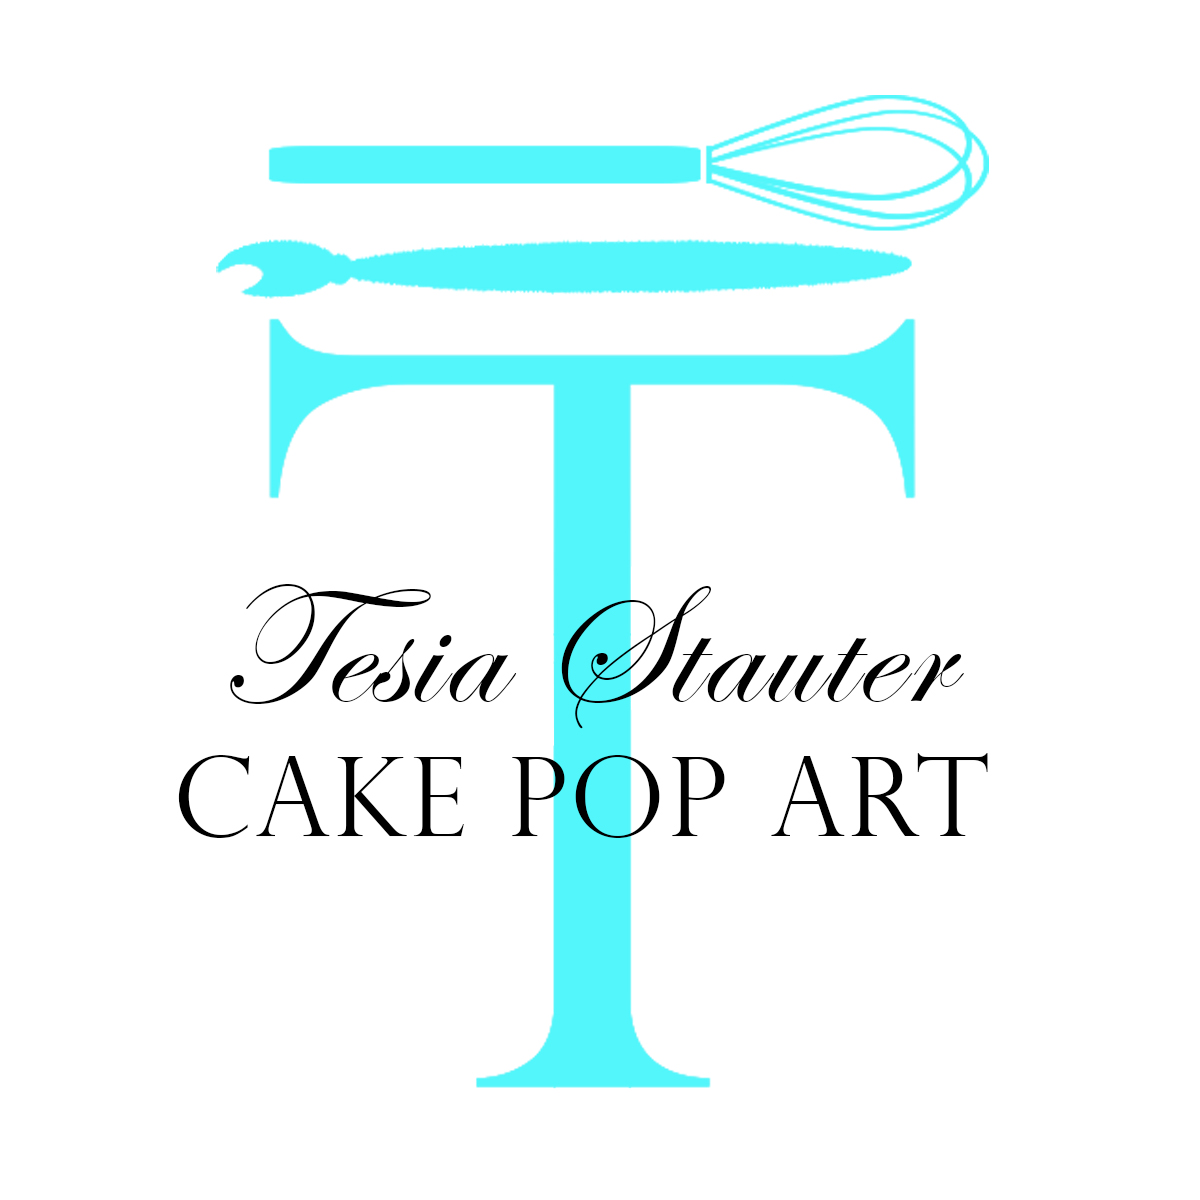 TS Cake Pop Art